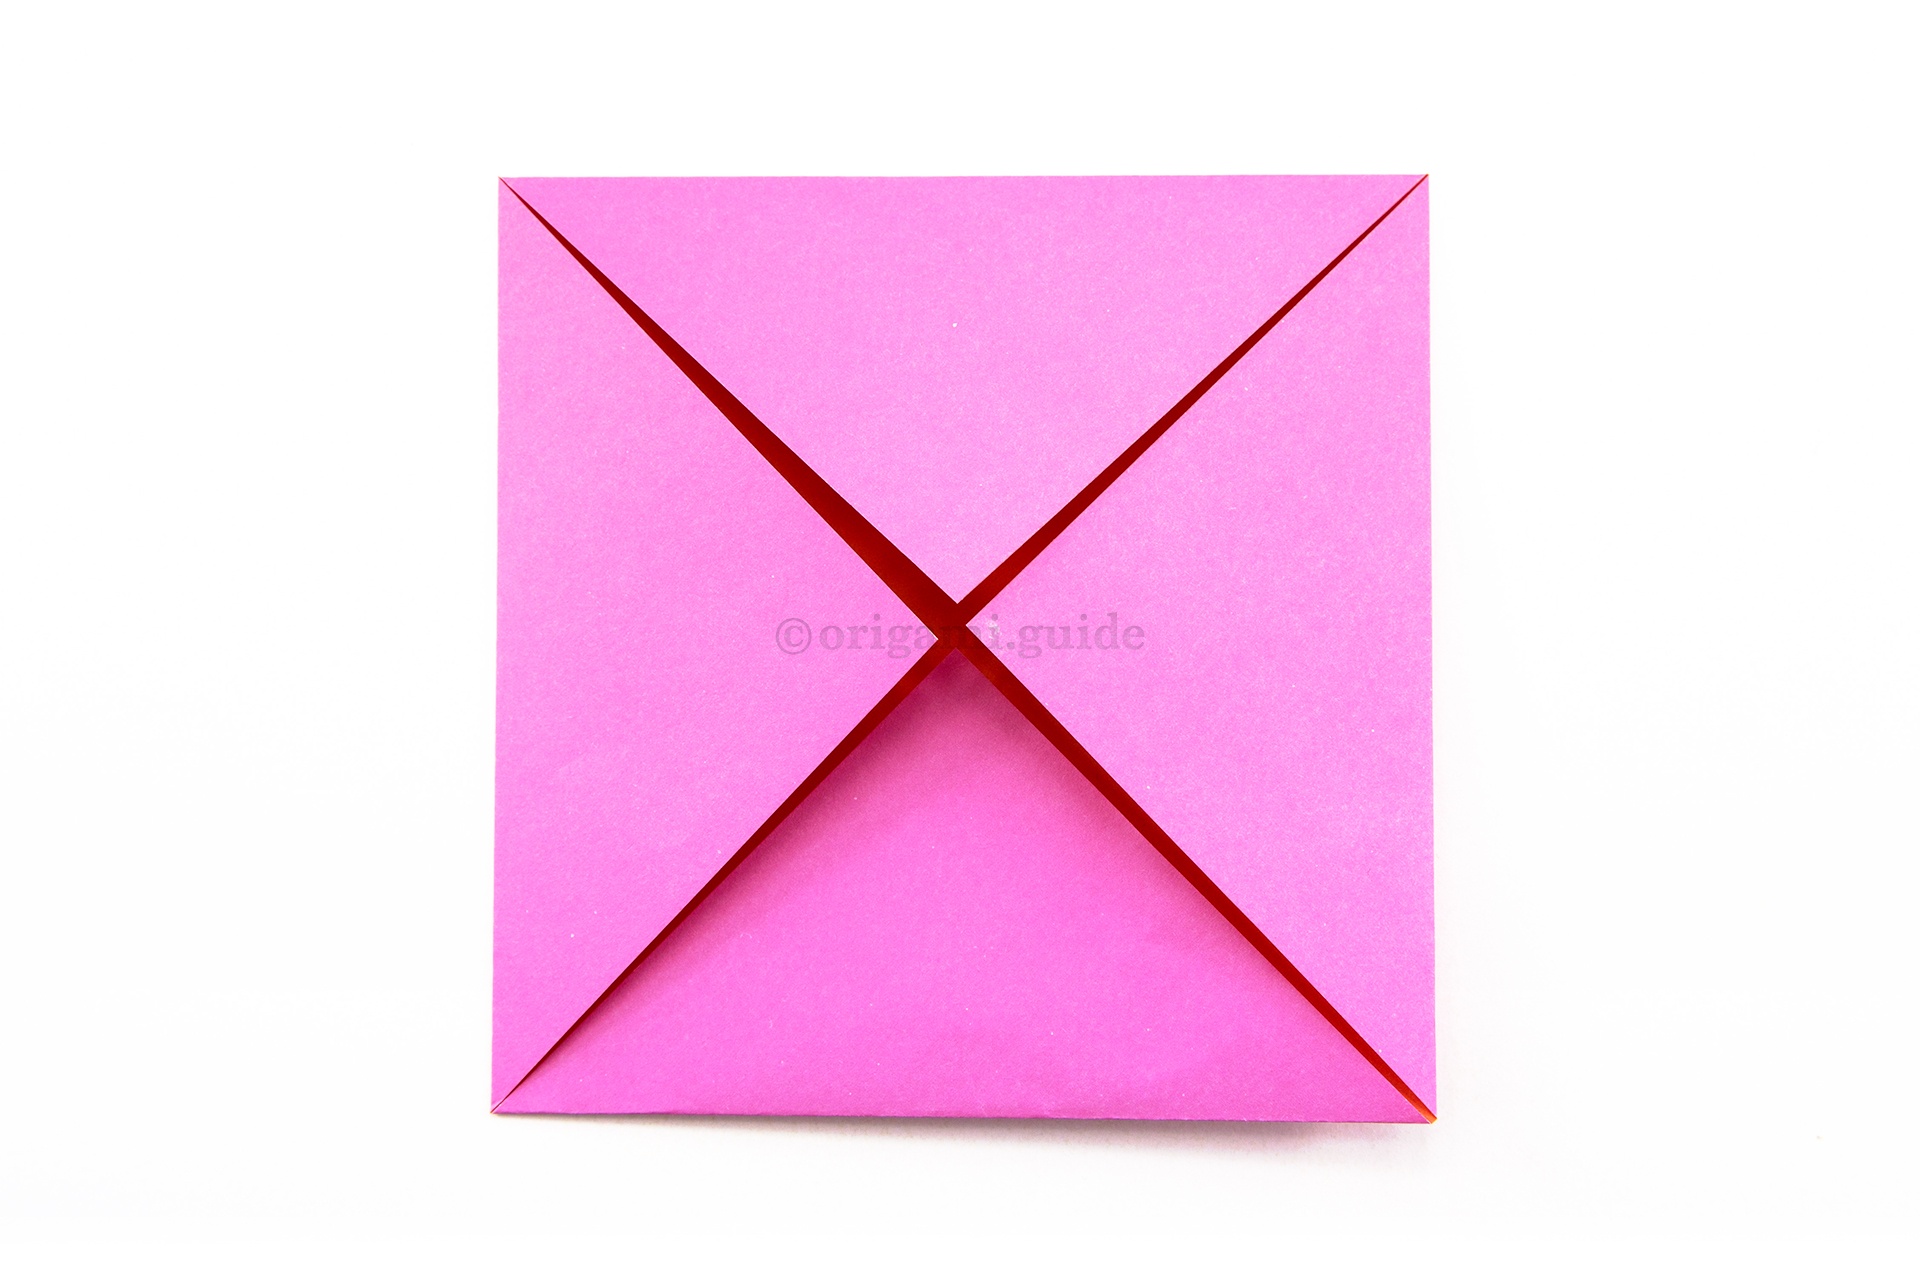 origami chatterbox or fortune teller - Google Search | Fortune ... | 1280x1920